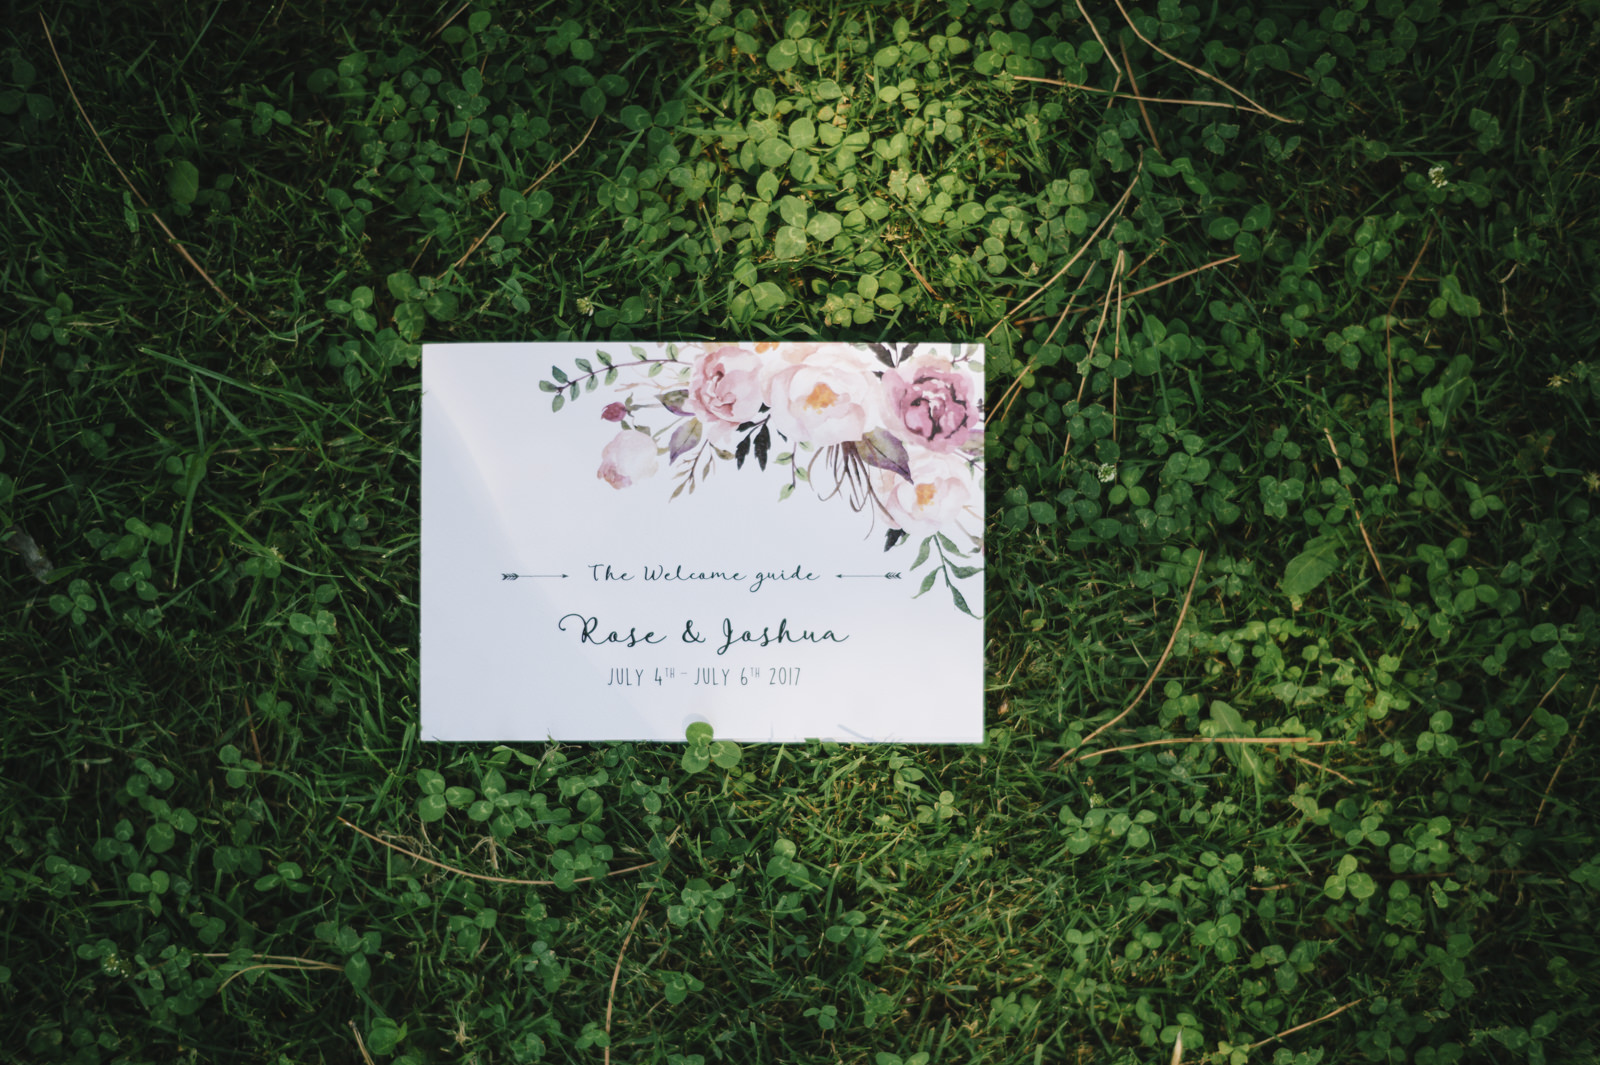 wedding invitation on the green grass